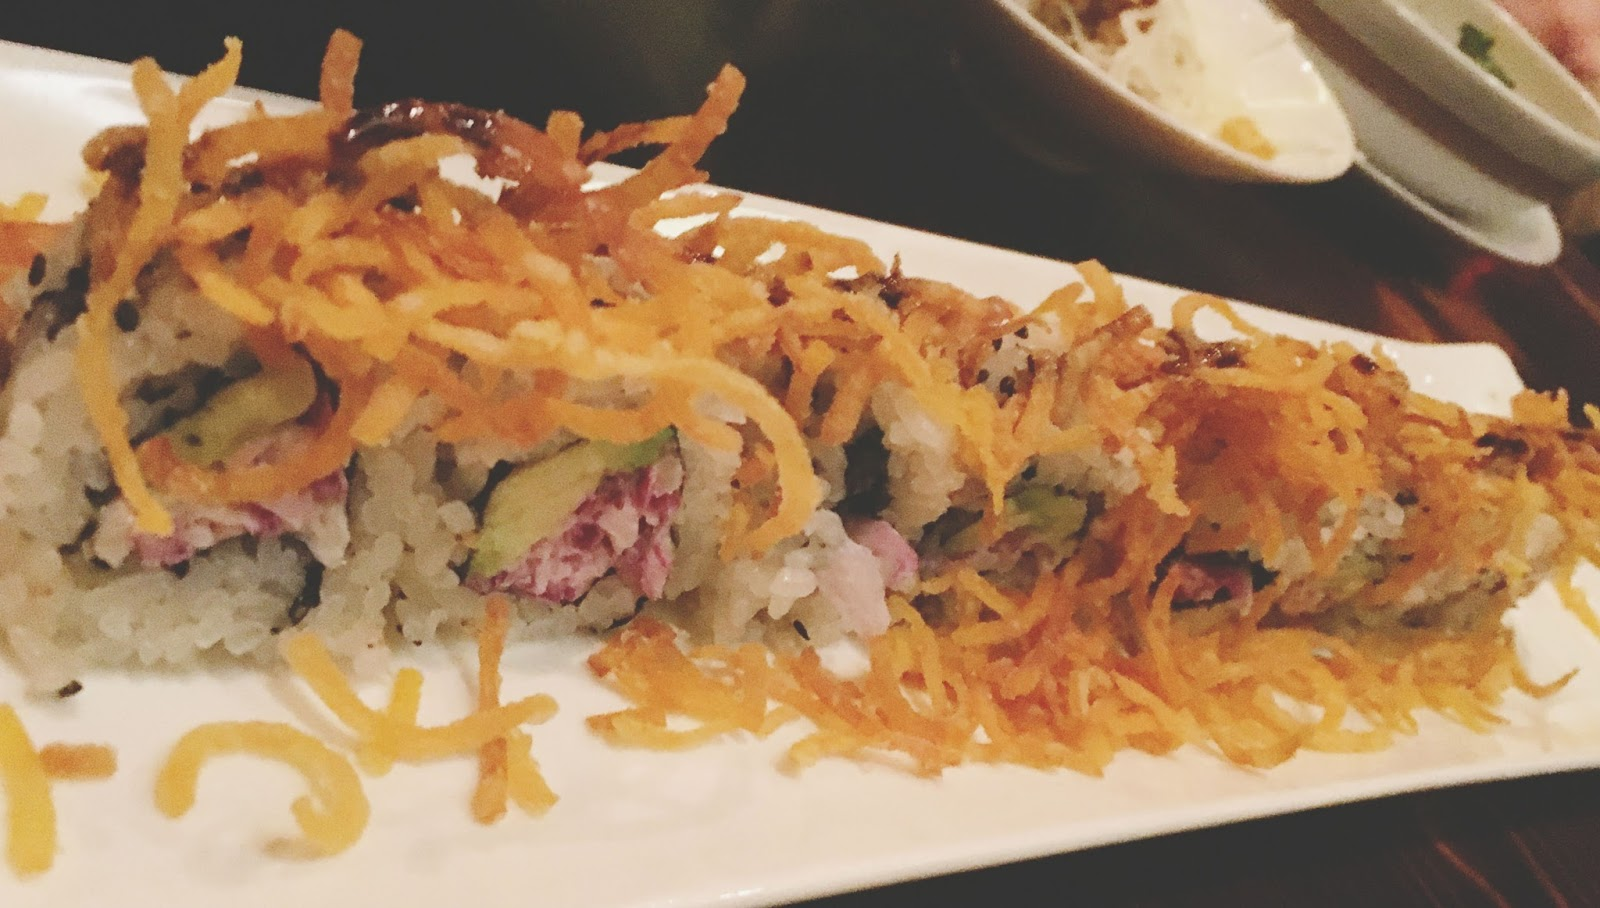 sweet potato roll at ka sushi, a restaurant in Houston, Texas